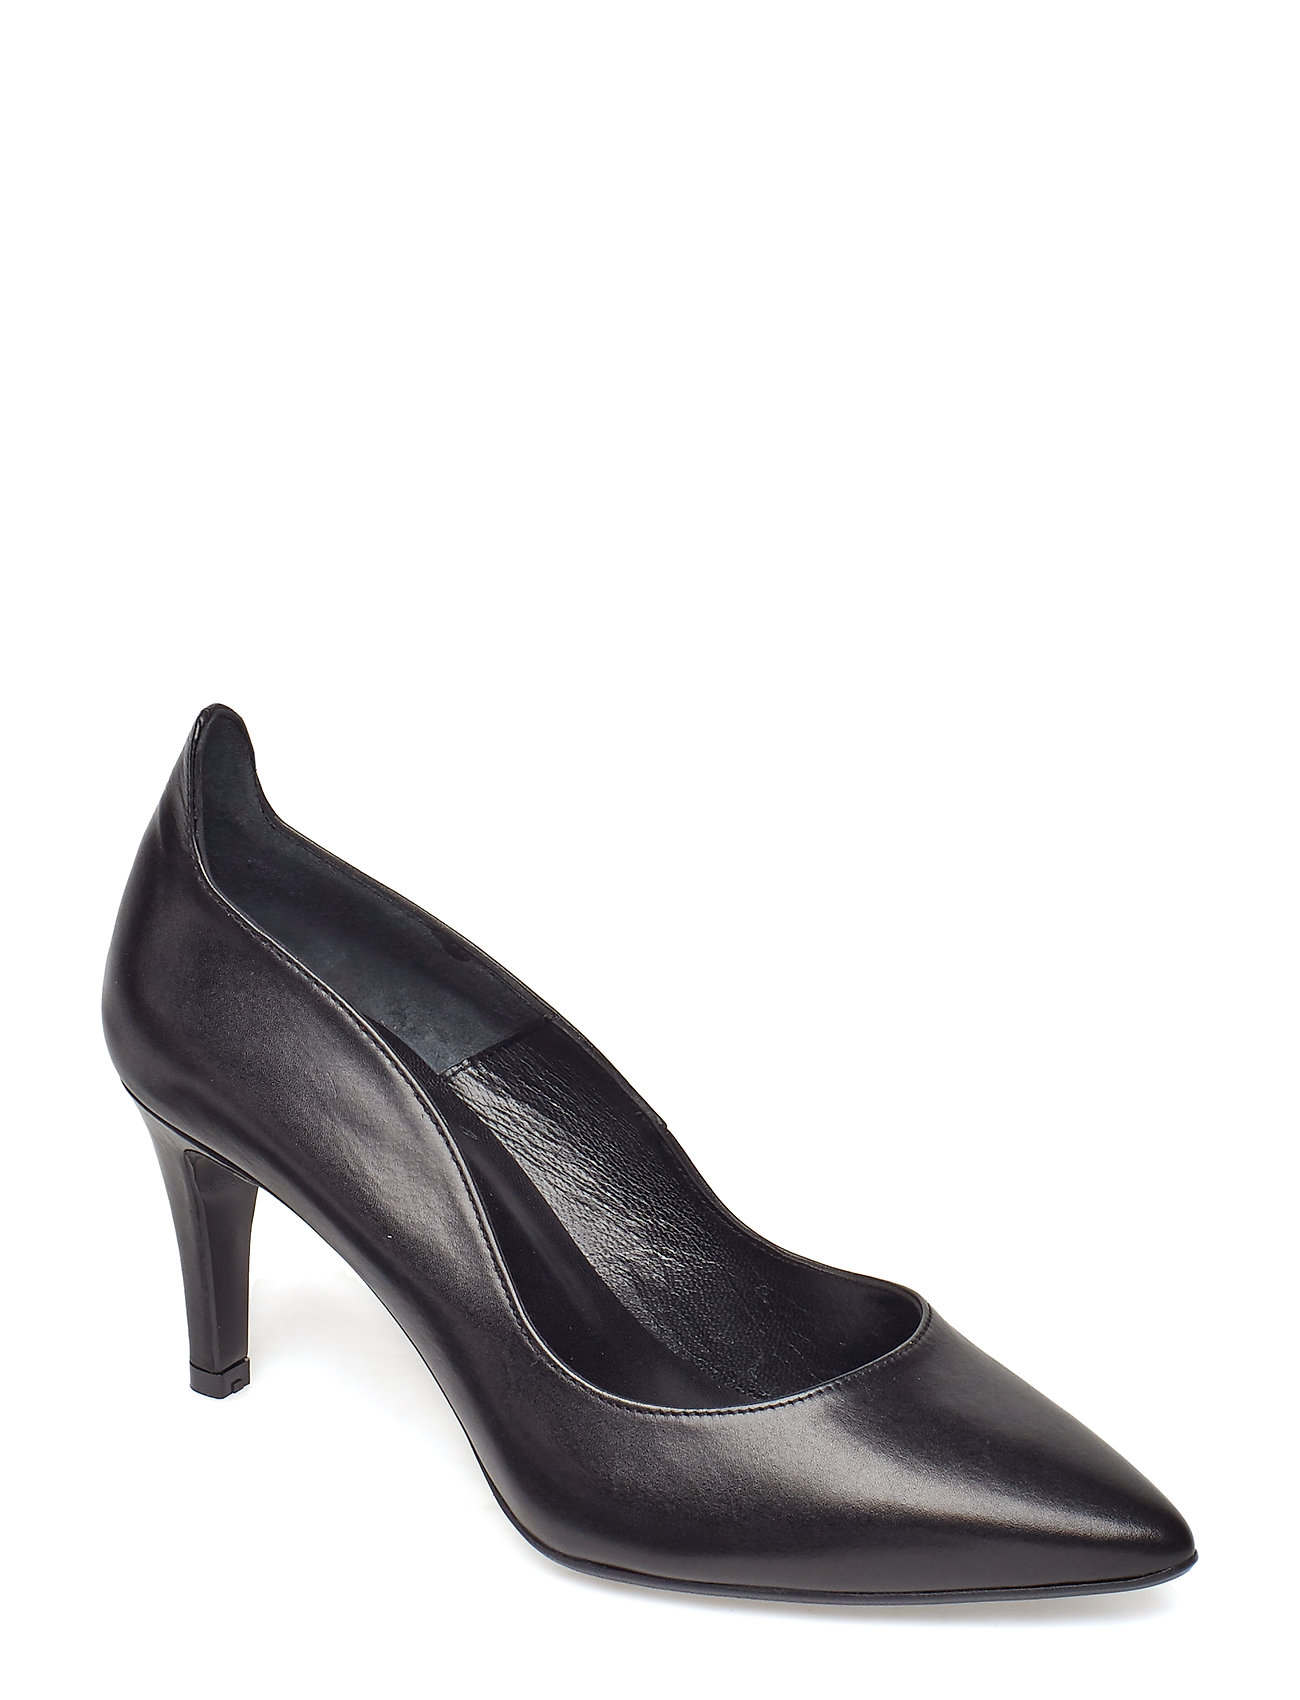 e351ca89298 Pumps (Black Calf 70) (714.35 kr) - Billi Bi - | Boozt.com